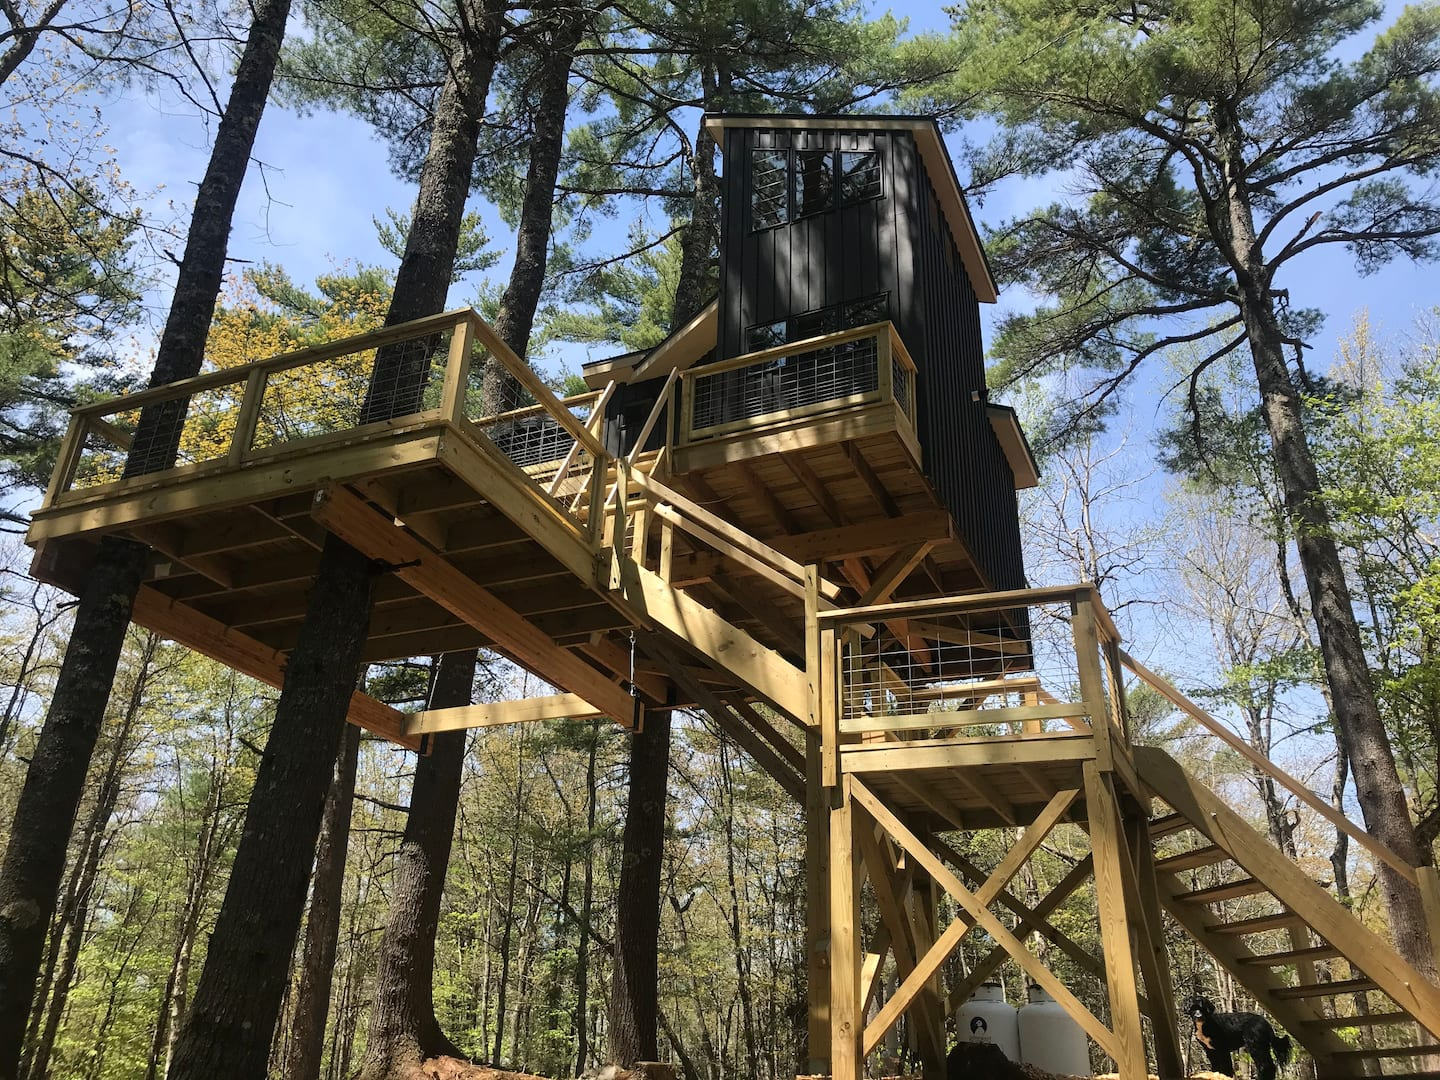 The Appleton Retreat Treehouse in Maine